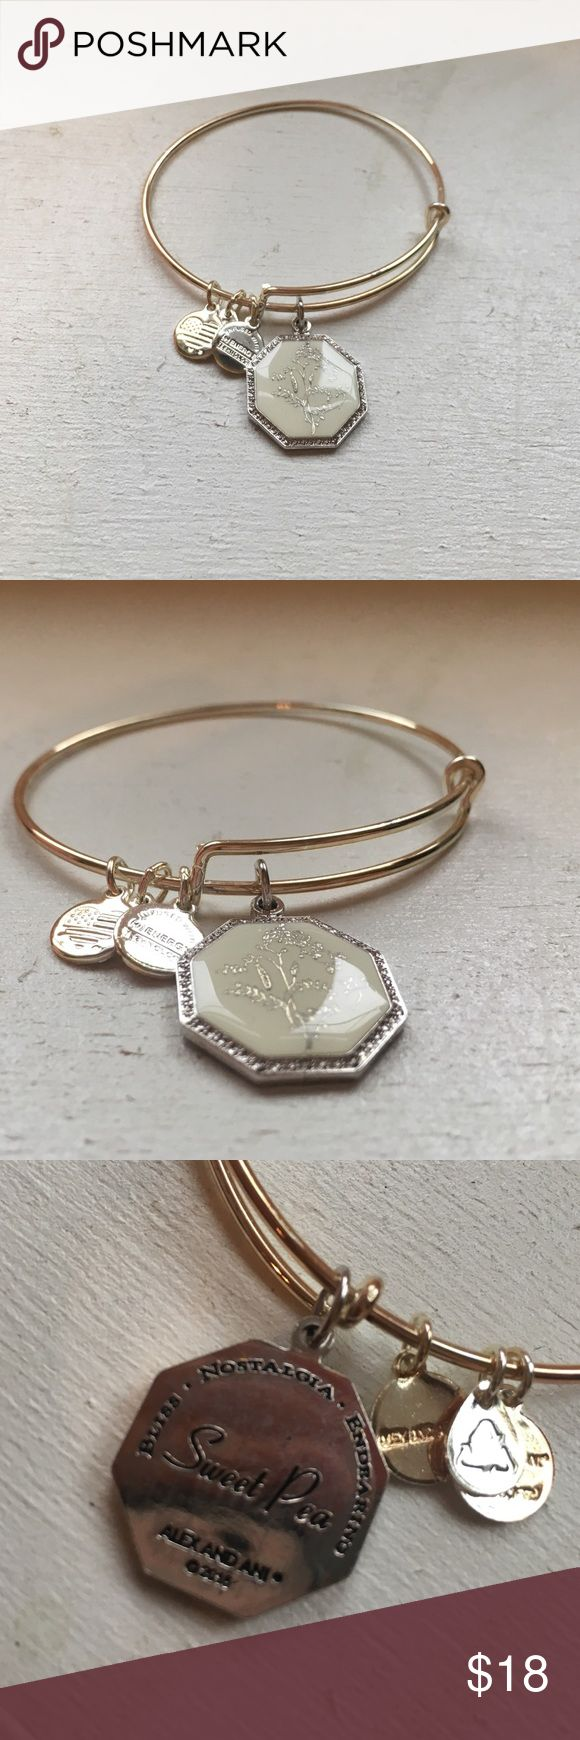 Alex and Ani bangle bracelet This true Alex and Ani bracelet has the pea plant April birth month flower charm on the side. Never been worn Alex & Ani Jewelry Bracelets